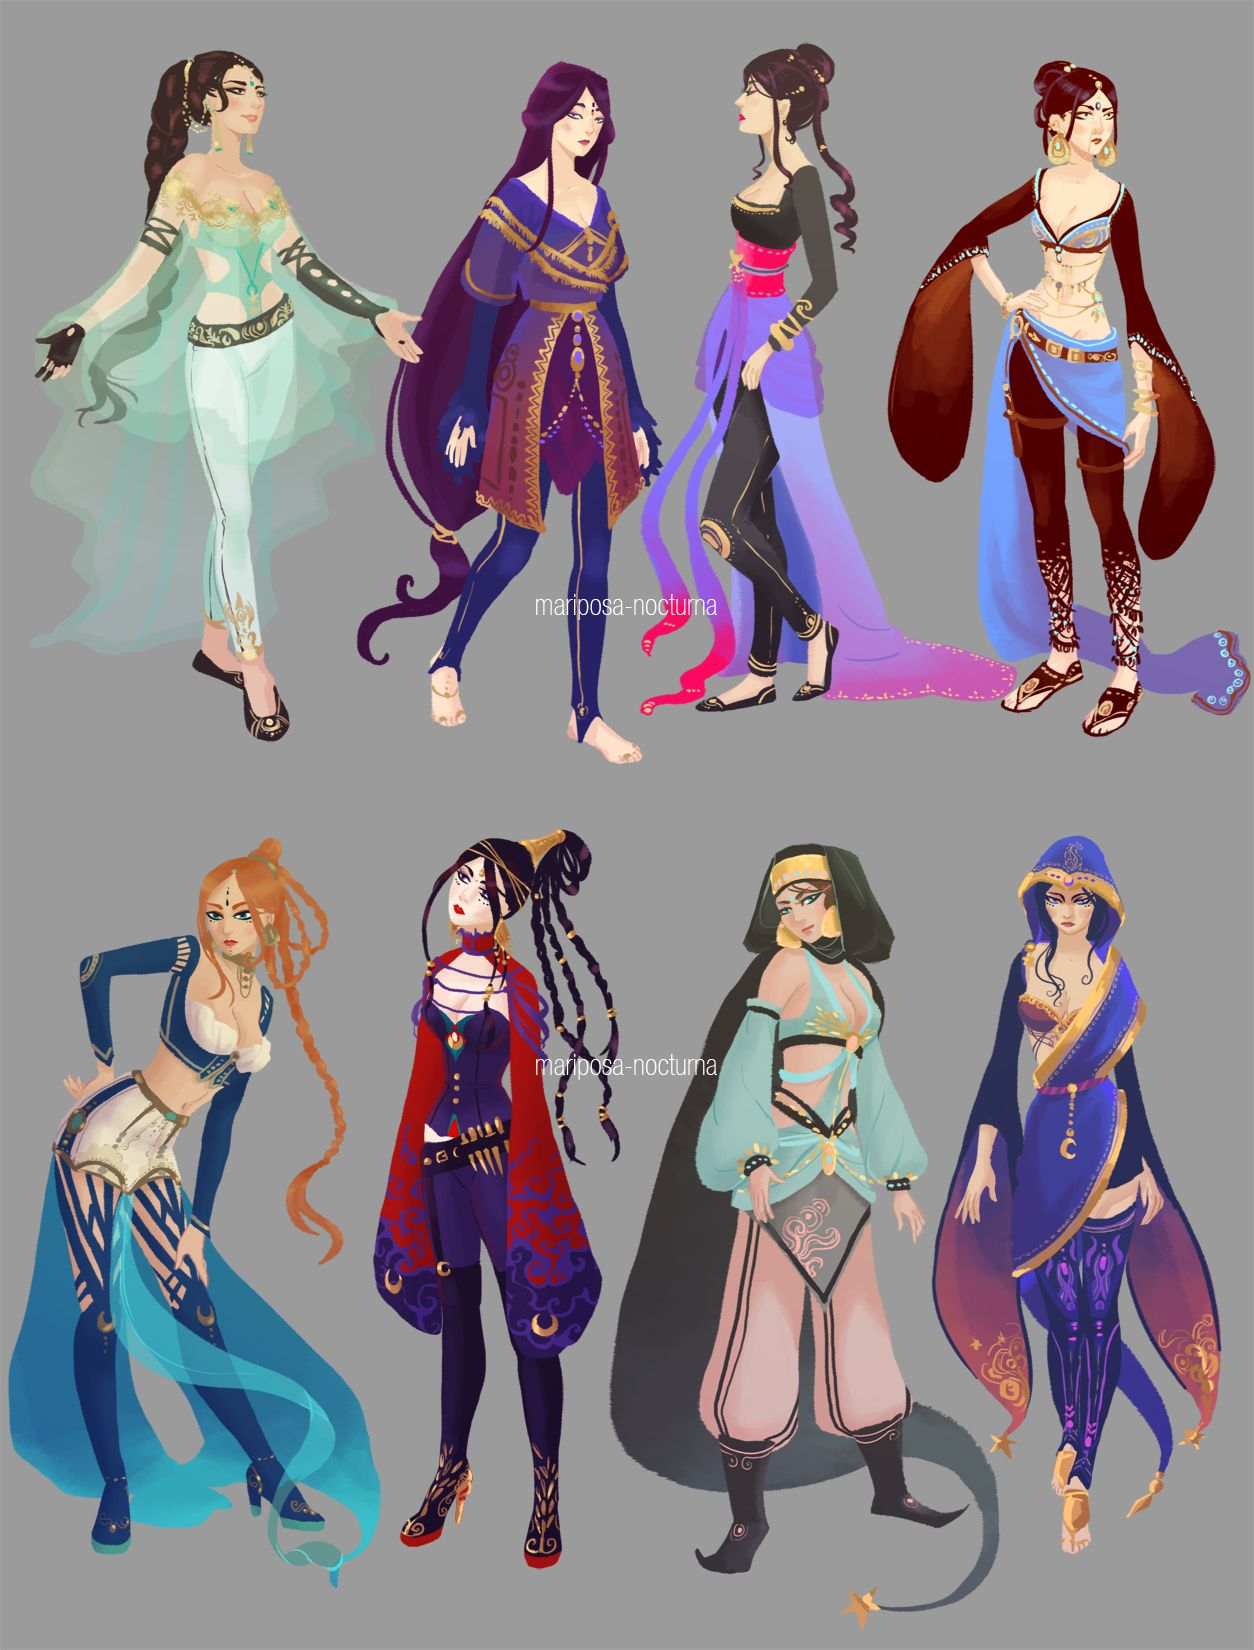 Character Analysis For Costume Design : Tumblr sketchdump costume design research by mariposa